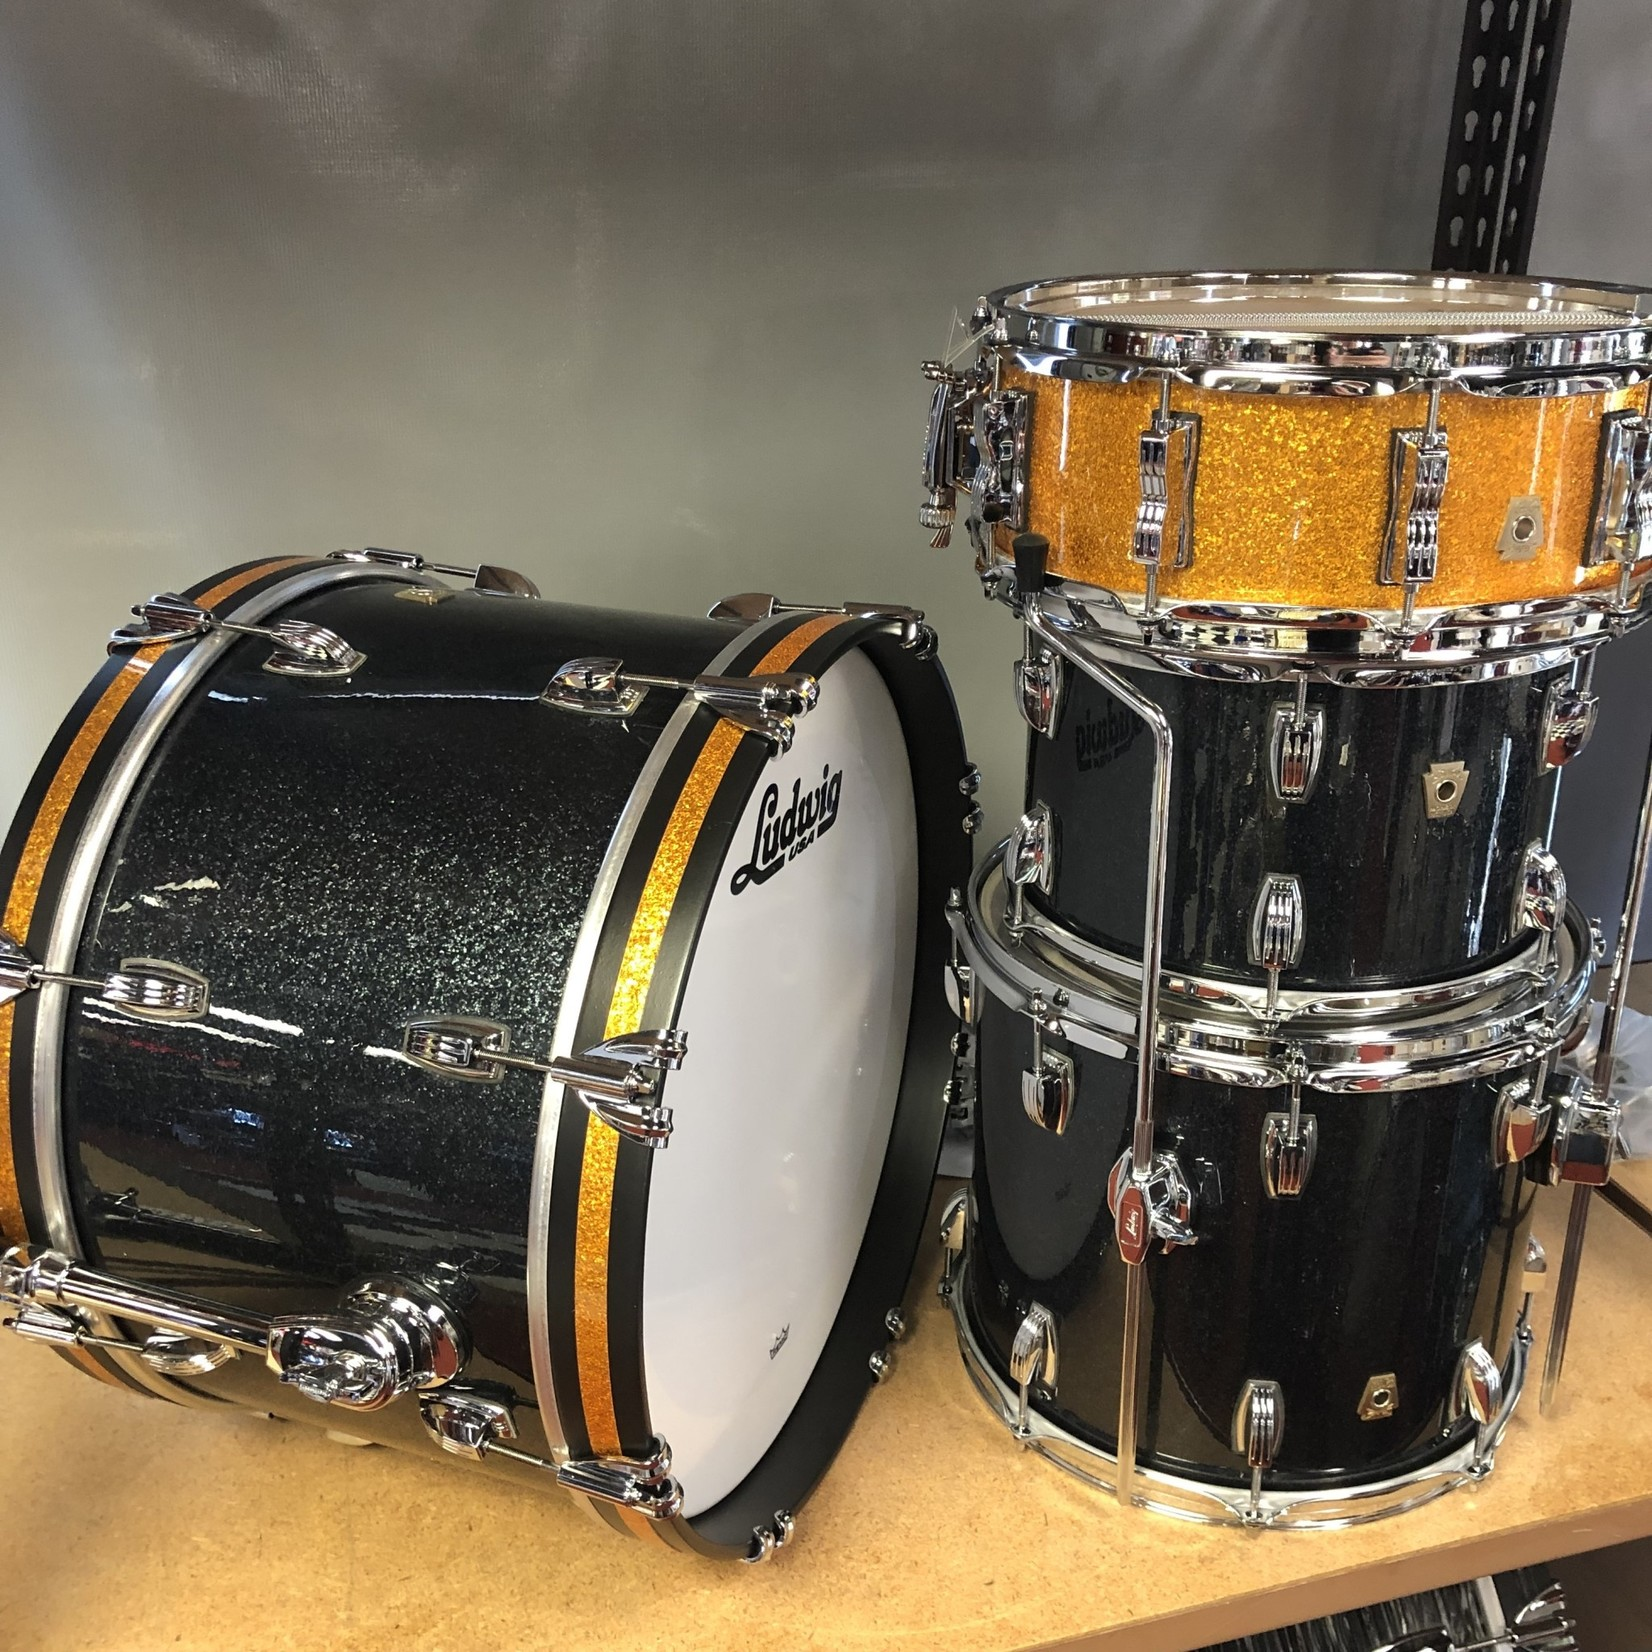 """Ludwig LUDWIG CLASSIC MAPLE """"EL CAMINO"""" 4-PC SHELL PACK 12/14/20/14s (BLACK SPARKLE W/ GOLD SPARKLE ACCENTS)"""